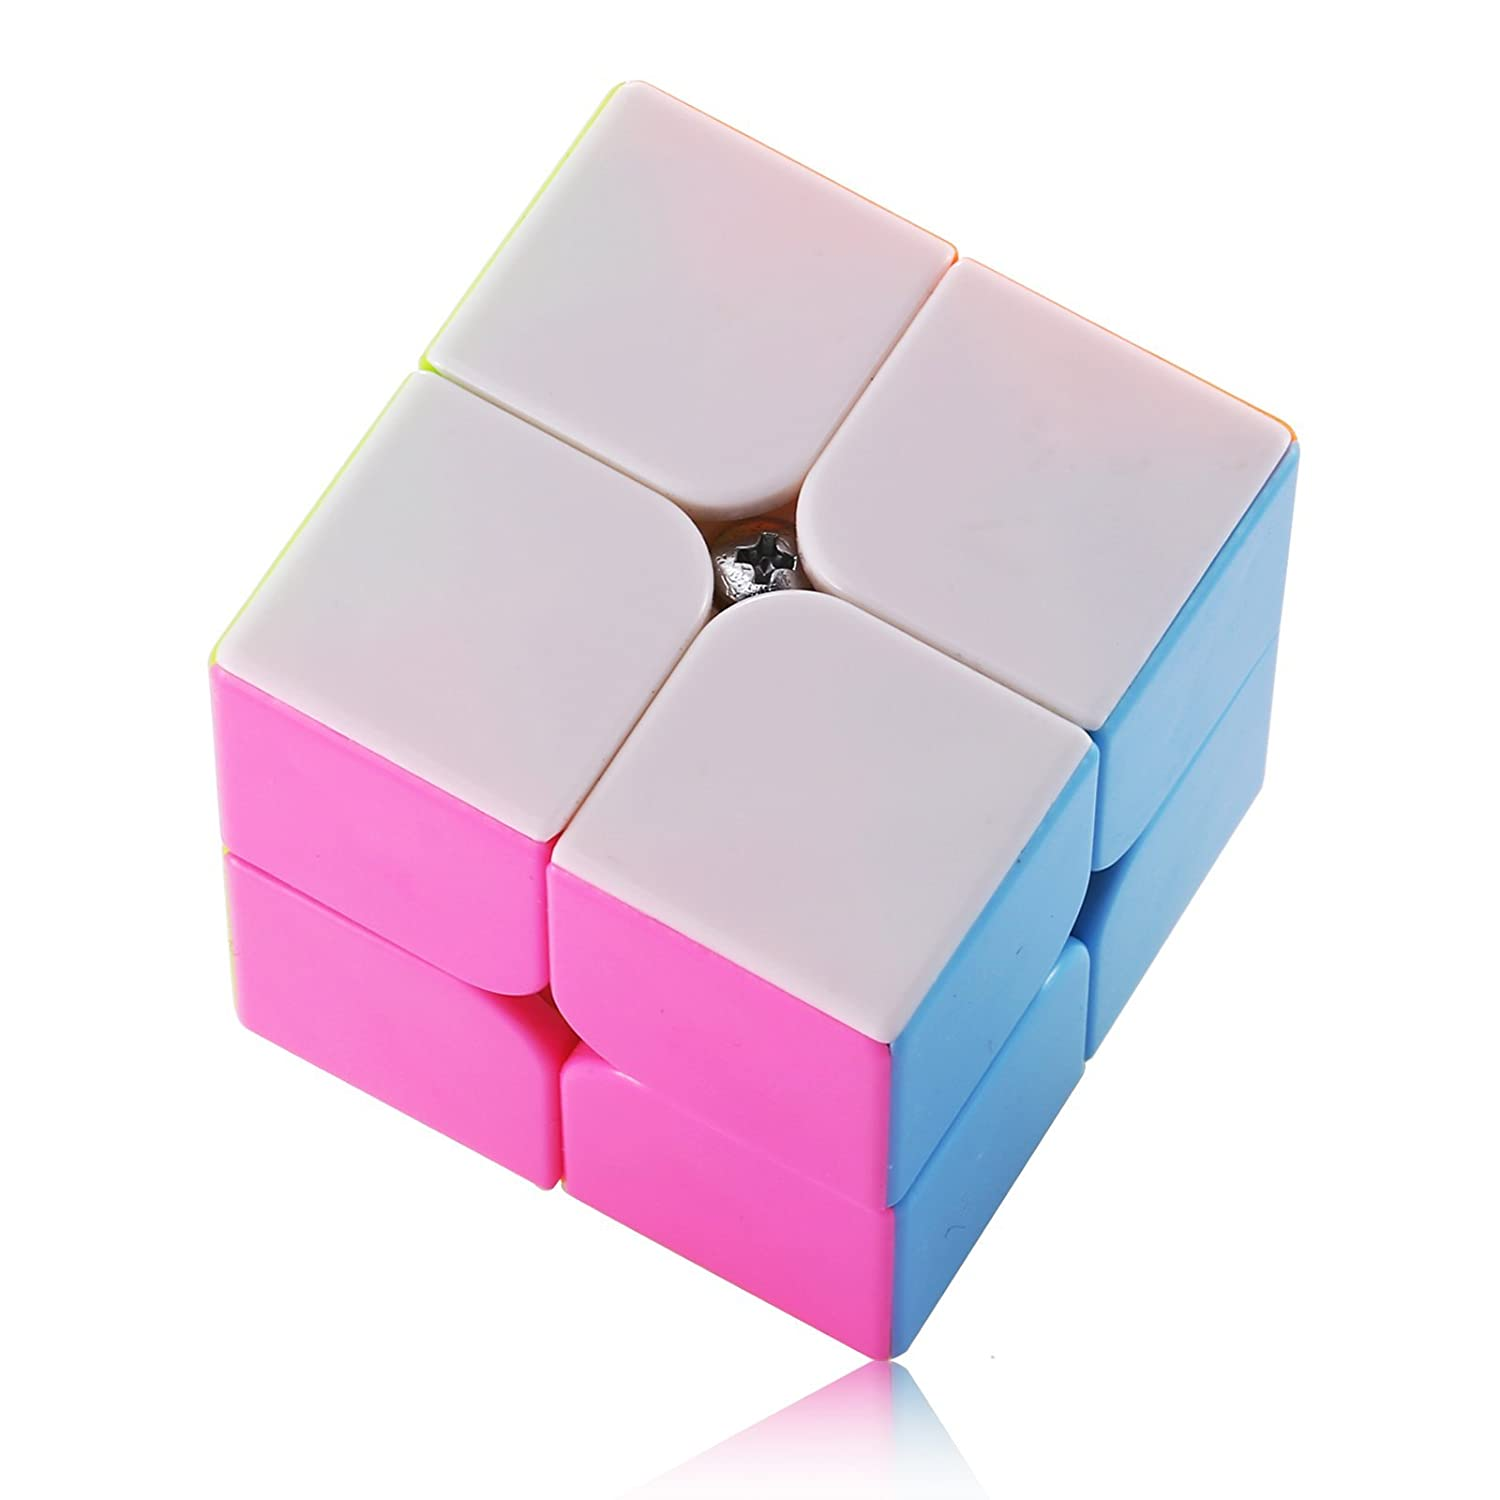 Dreampark 2x2 Speed Cube Stickerless Smooth Magic Cube Puzzles - 100% Money Back Guarantee